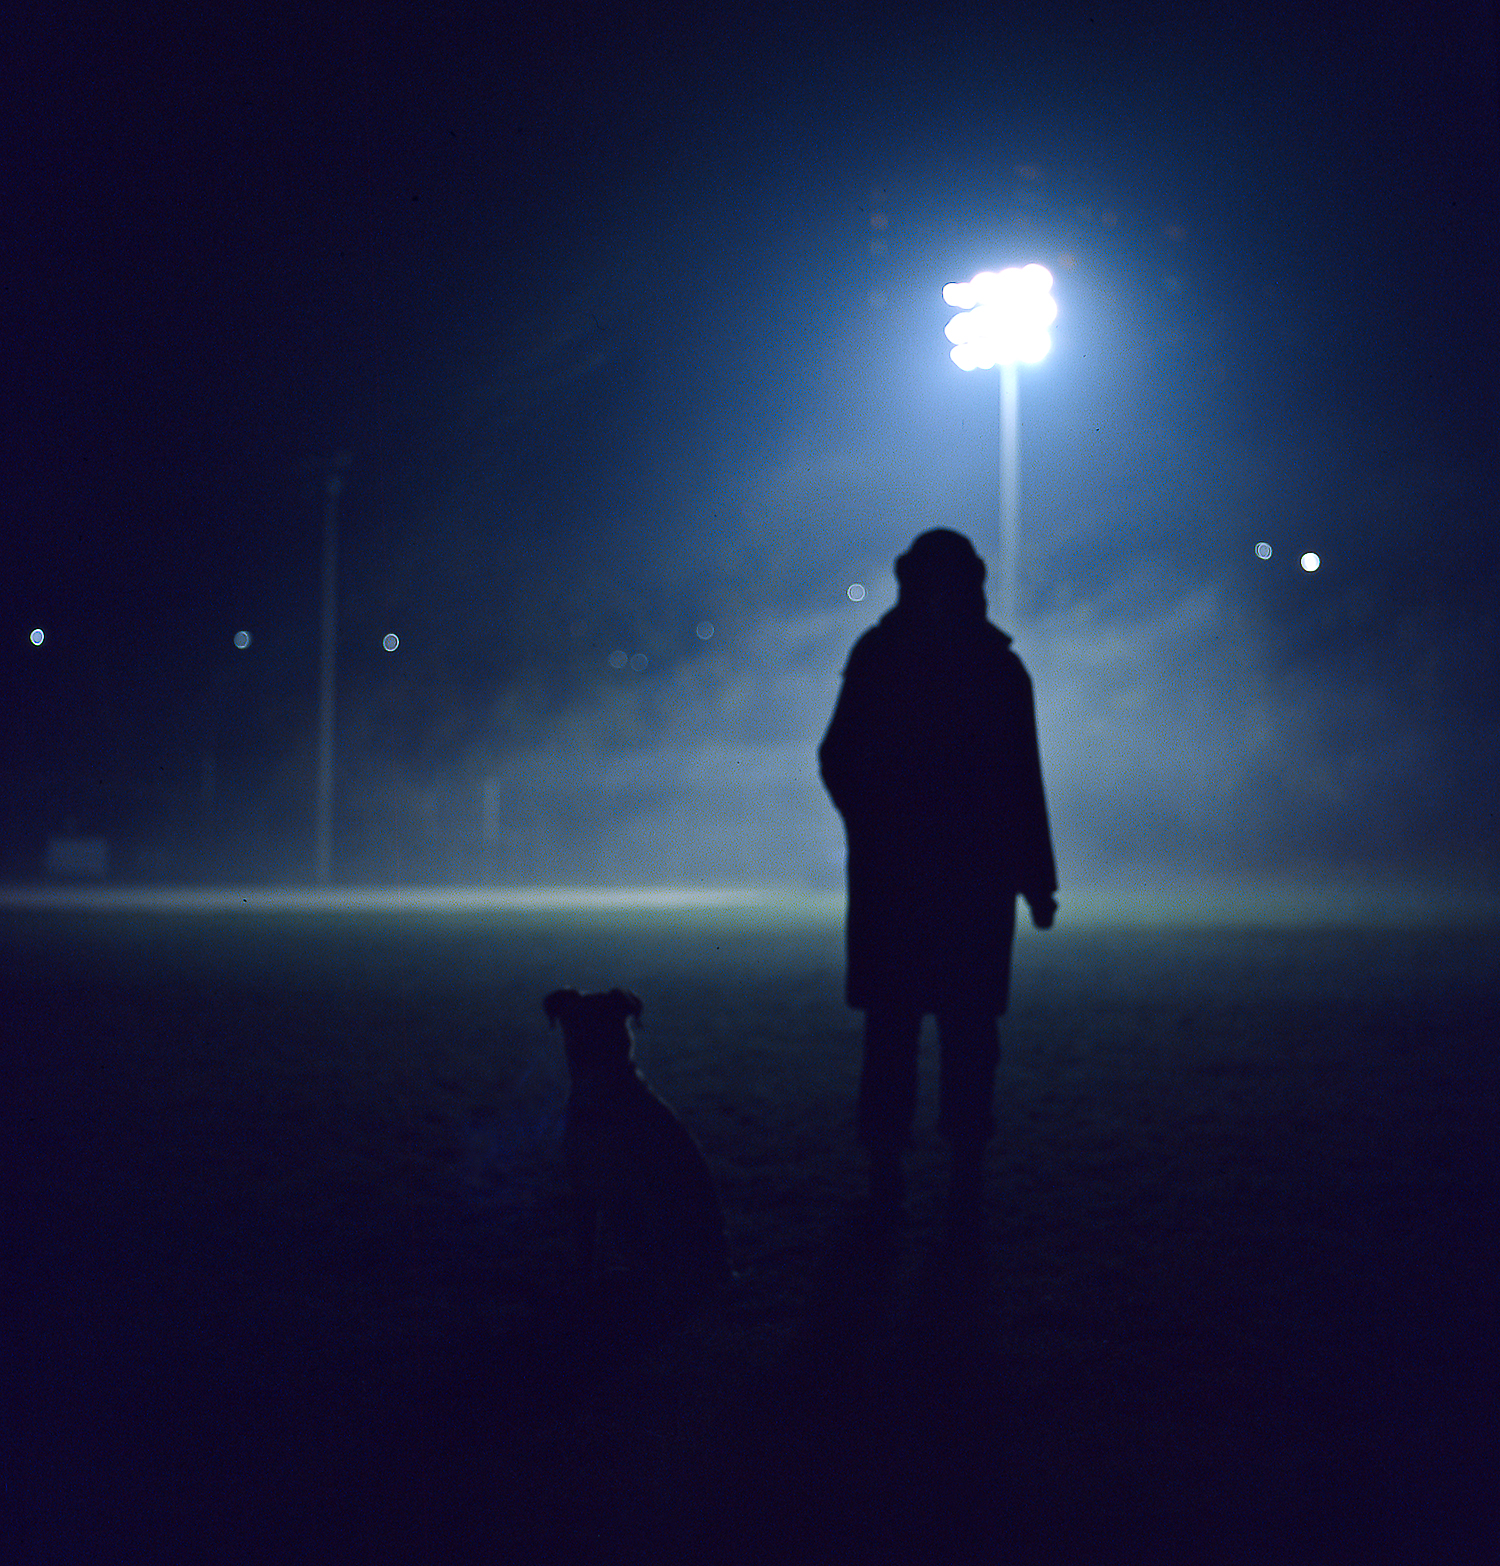 24-Banff_2016_KodakE100GX_Dog-and-Owner-in-the-fog-ektachome.jpg